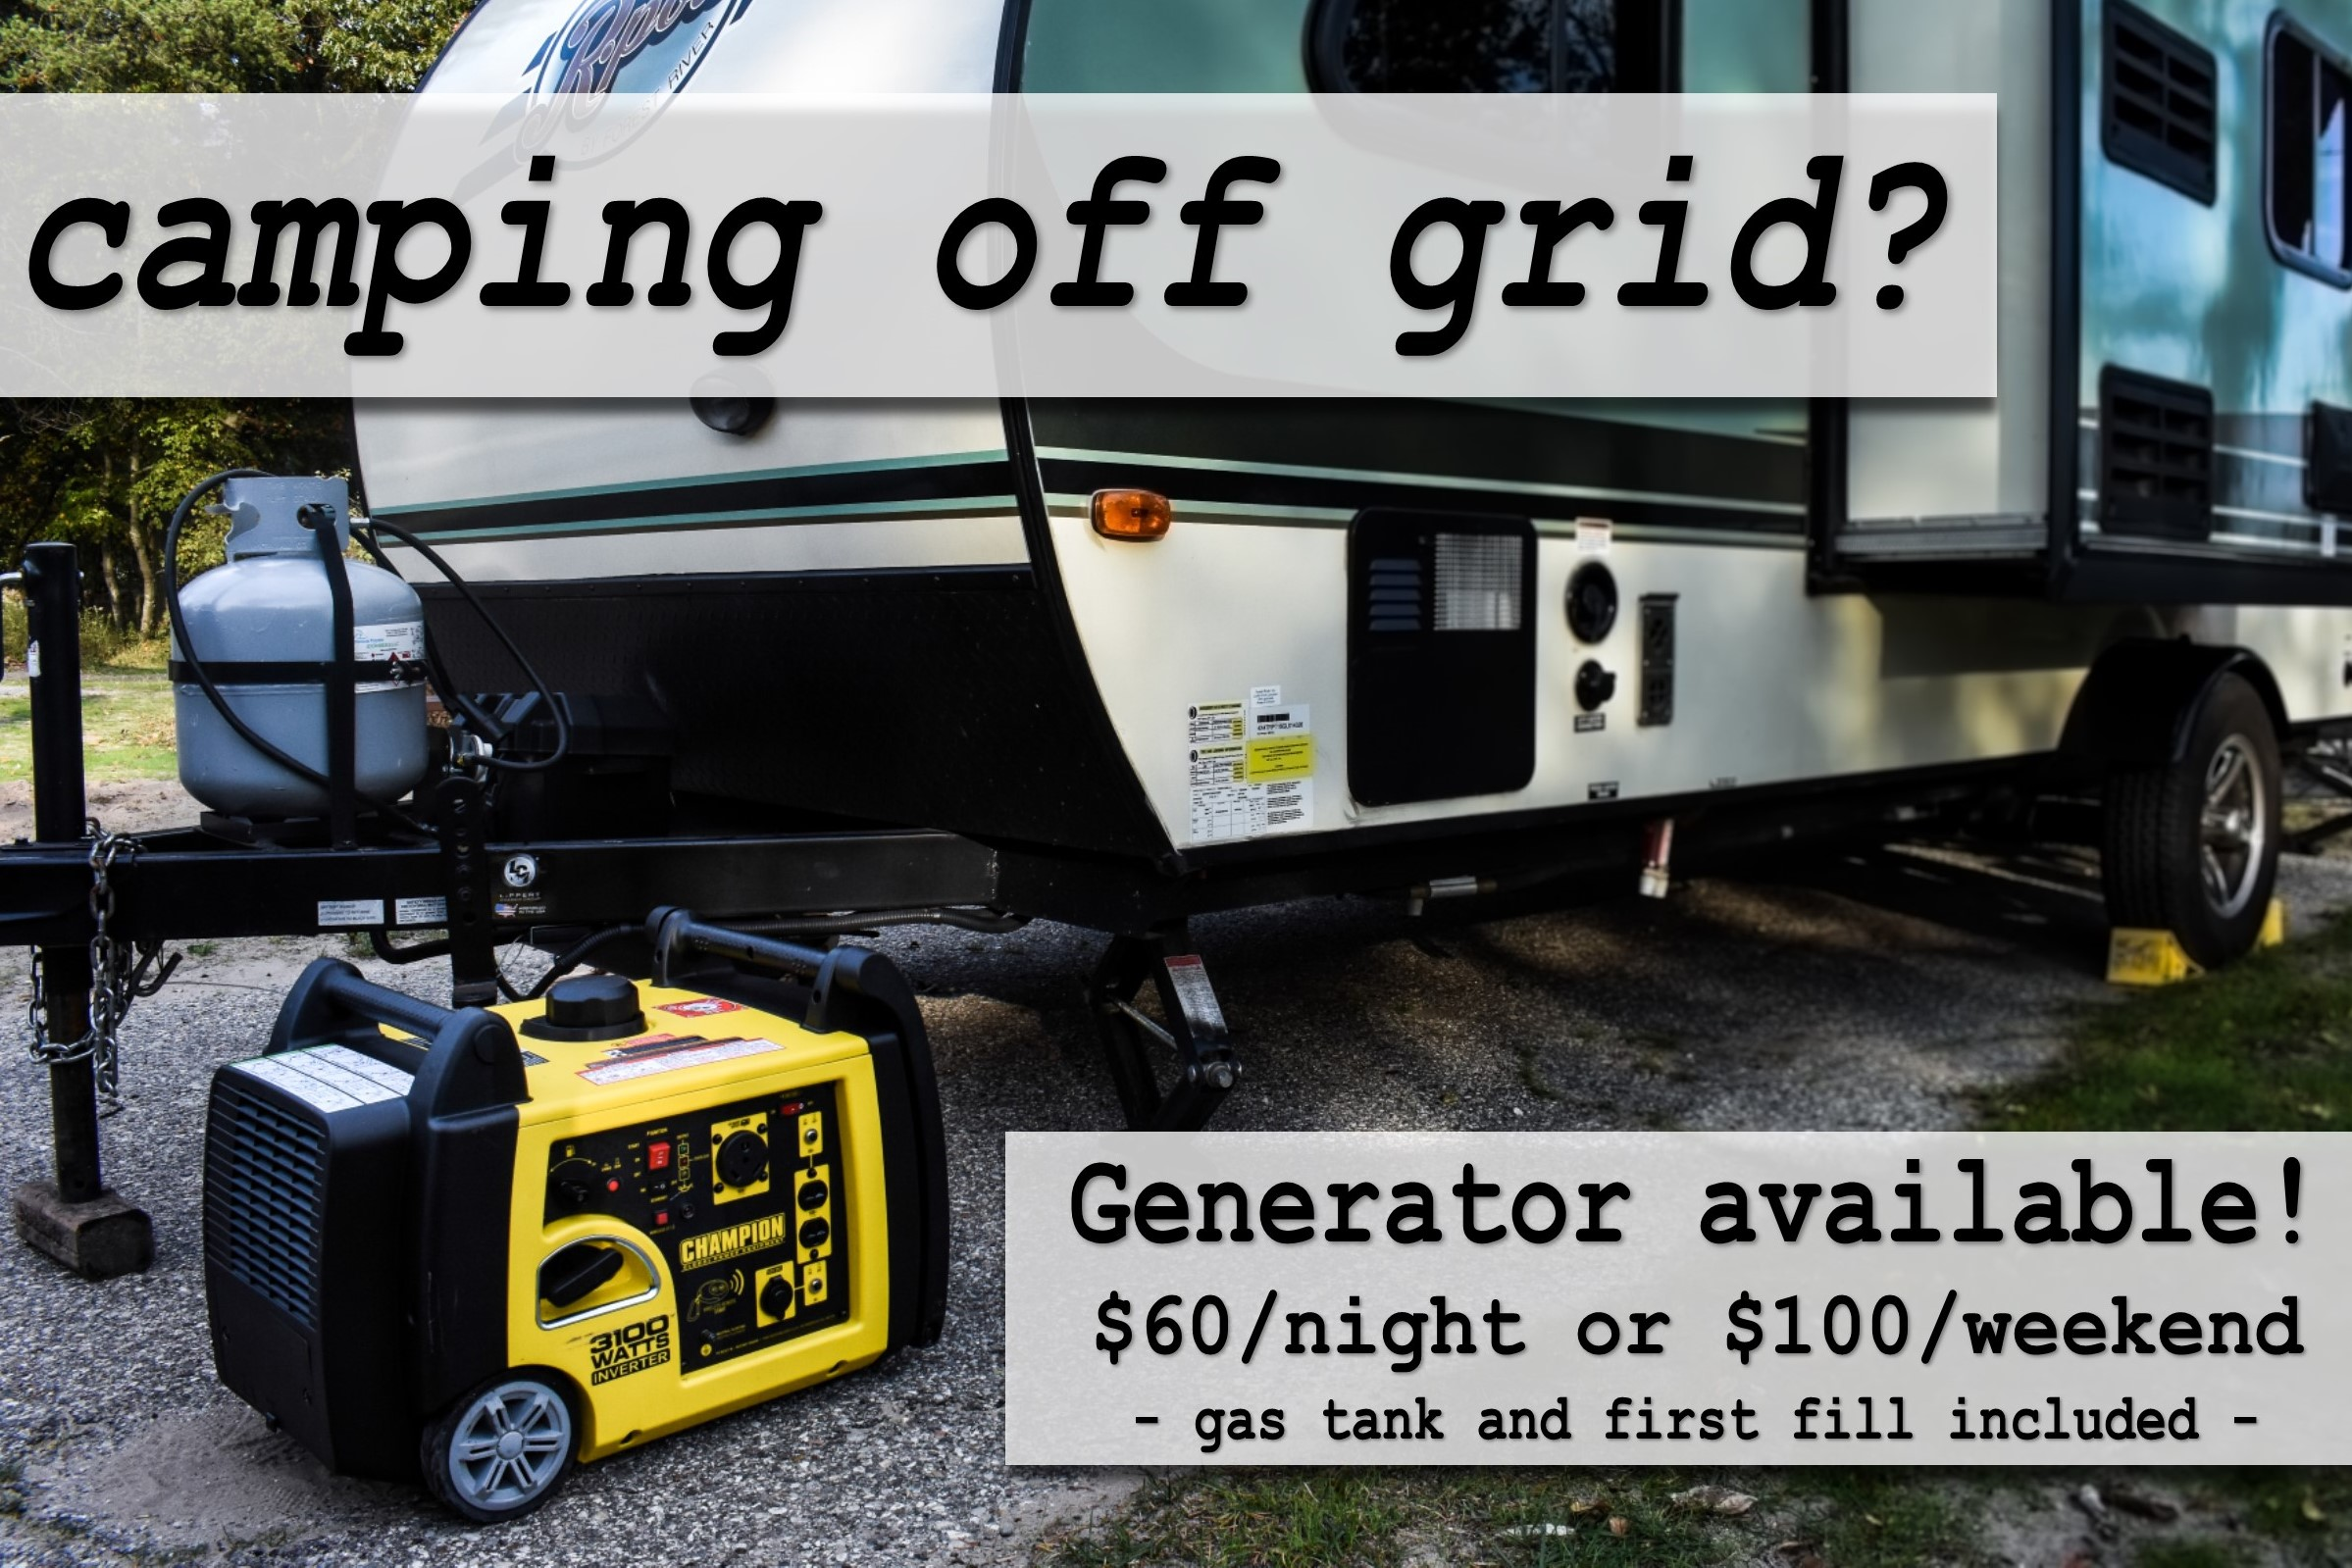 Campshare Generator Rental Muskegon Michigan.jpg